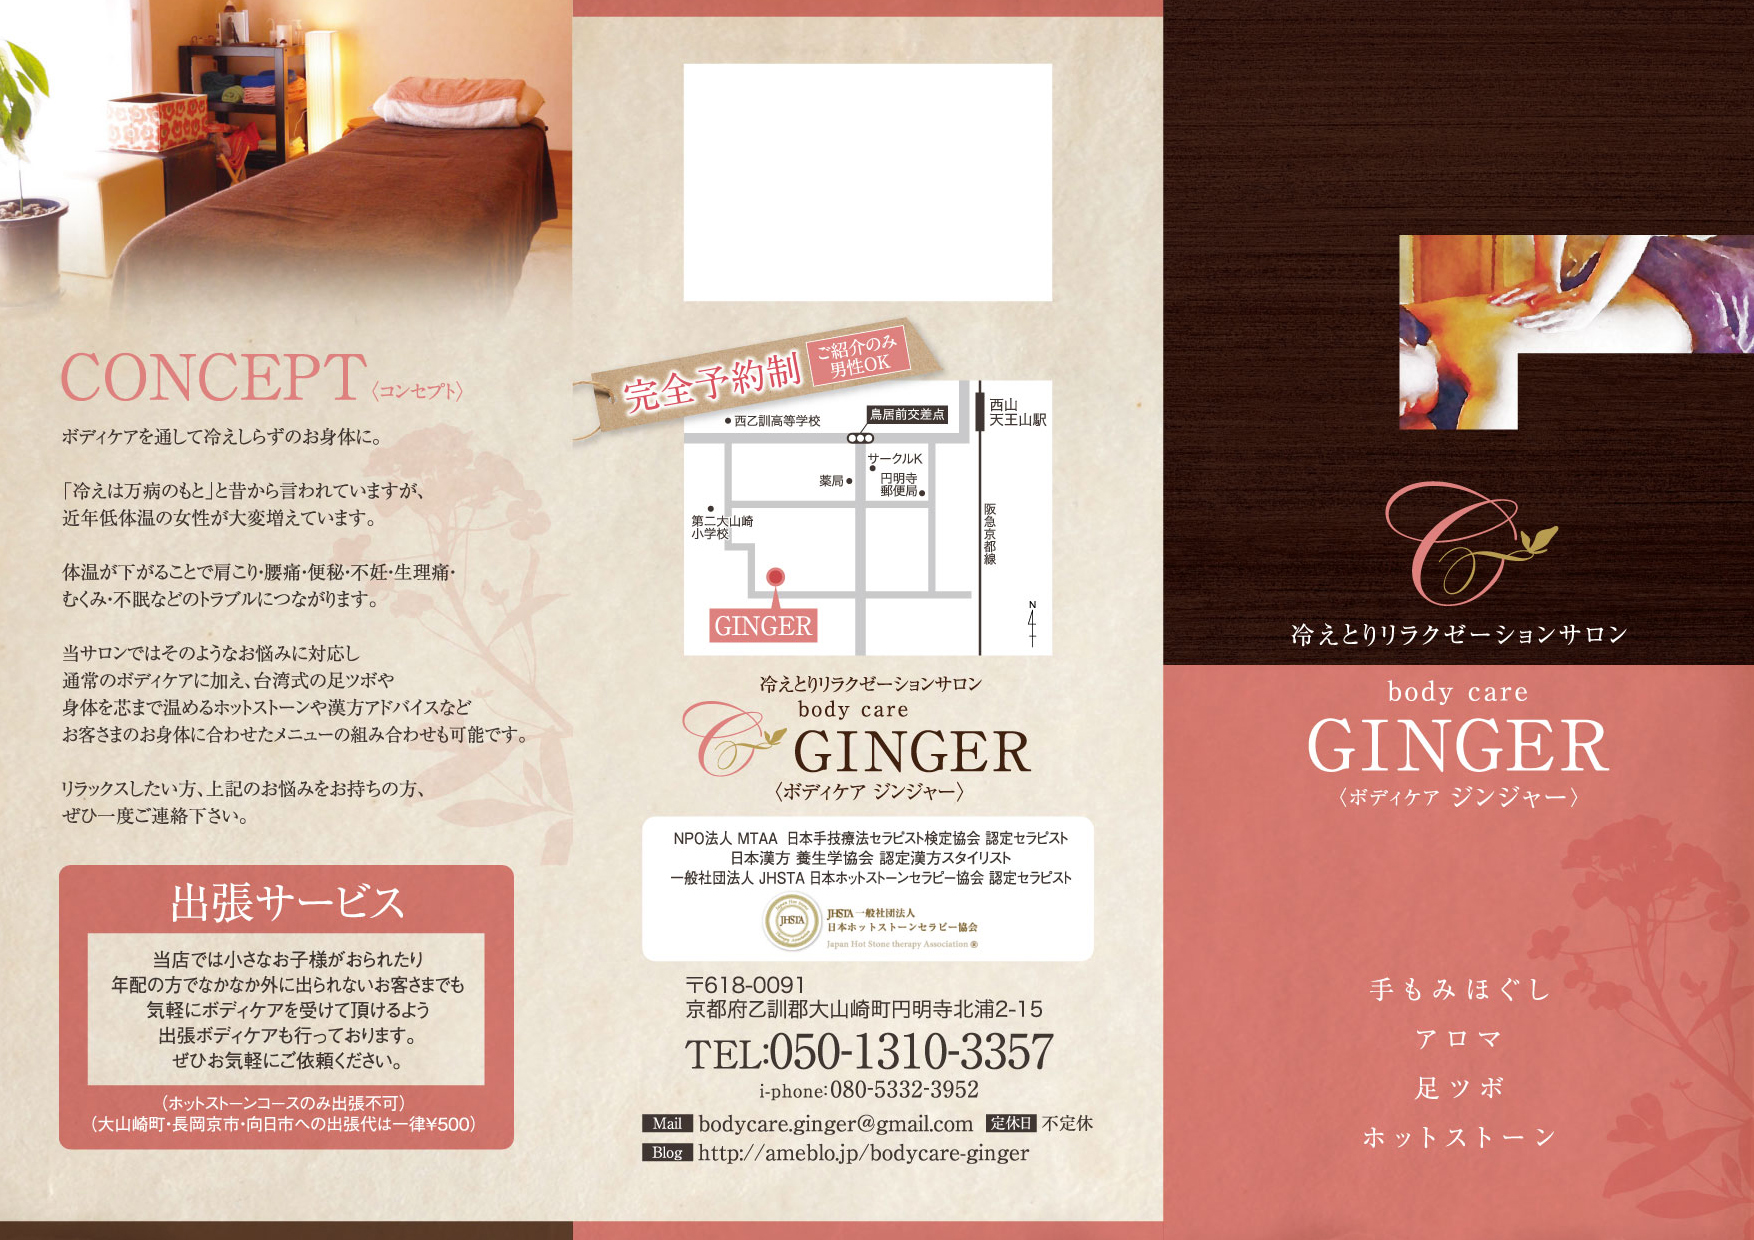 body care GINGER